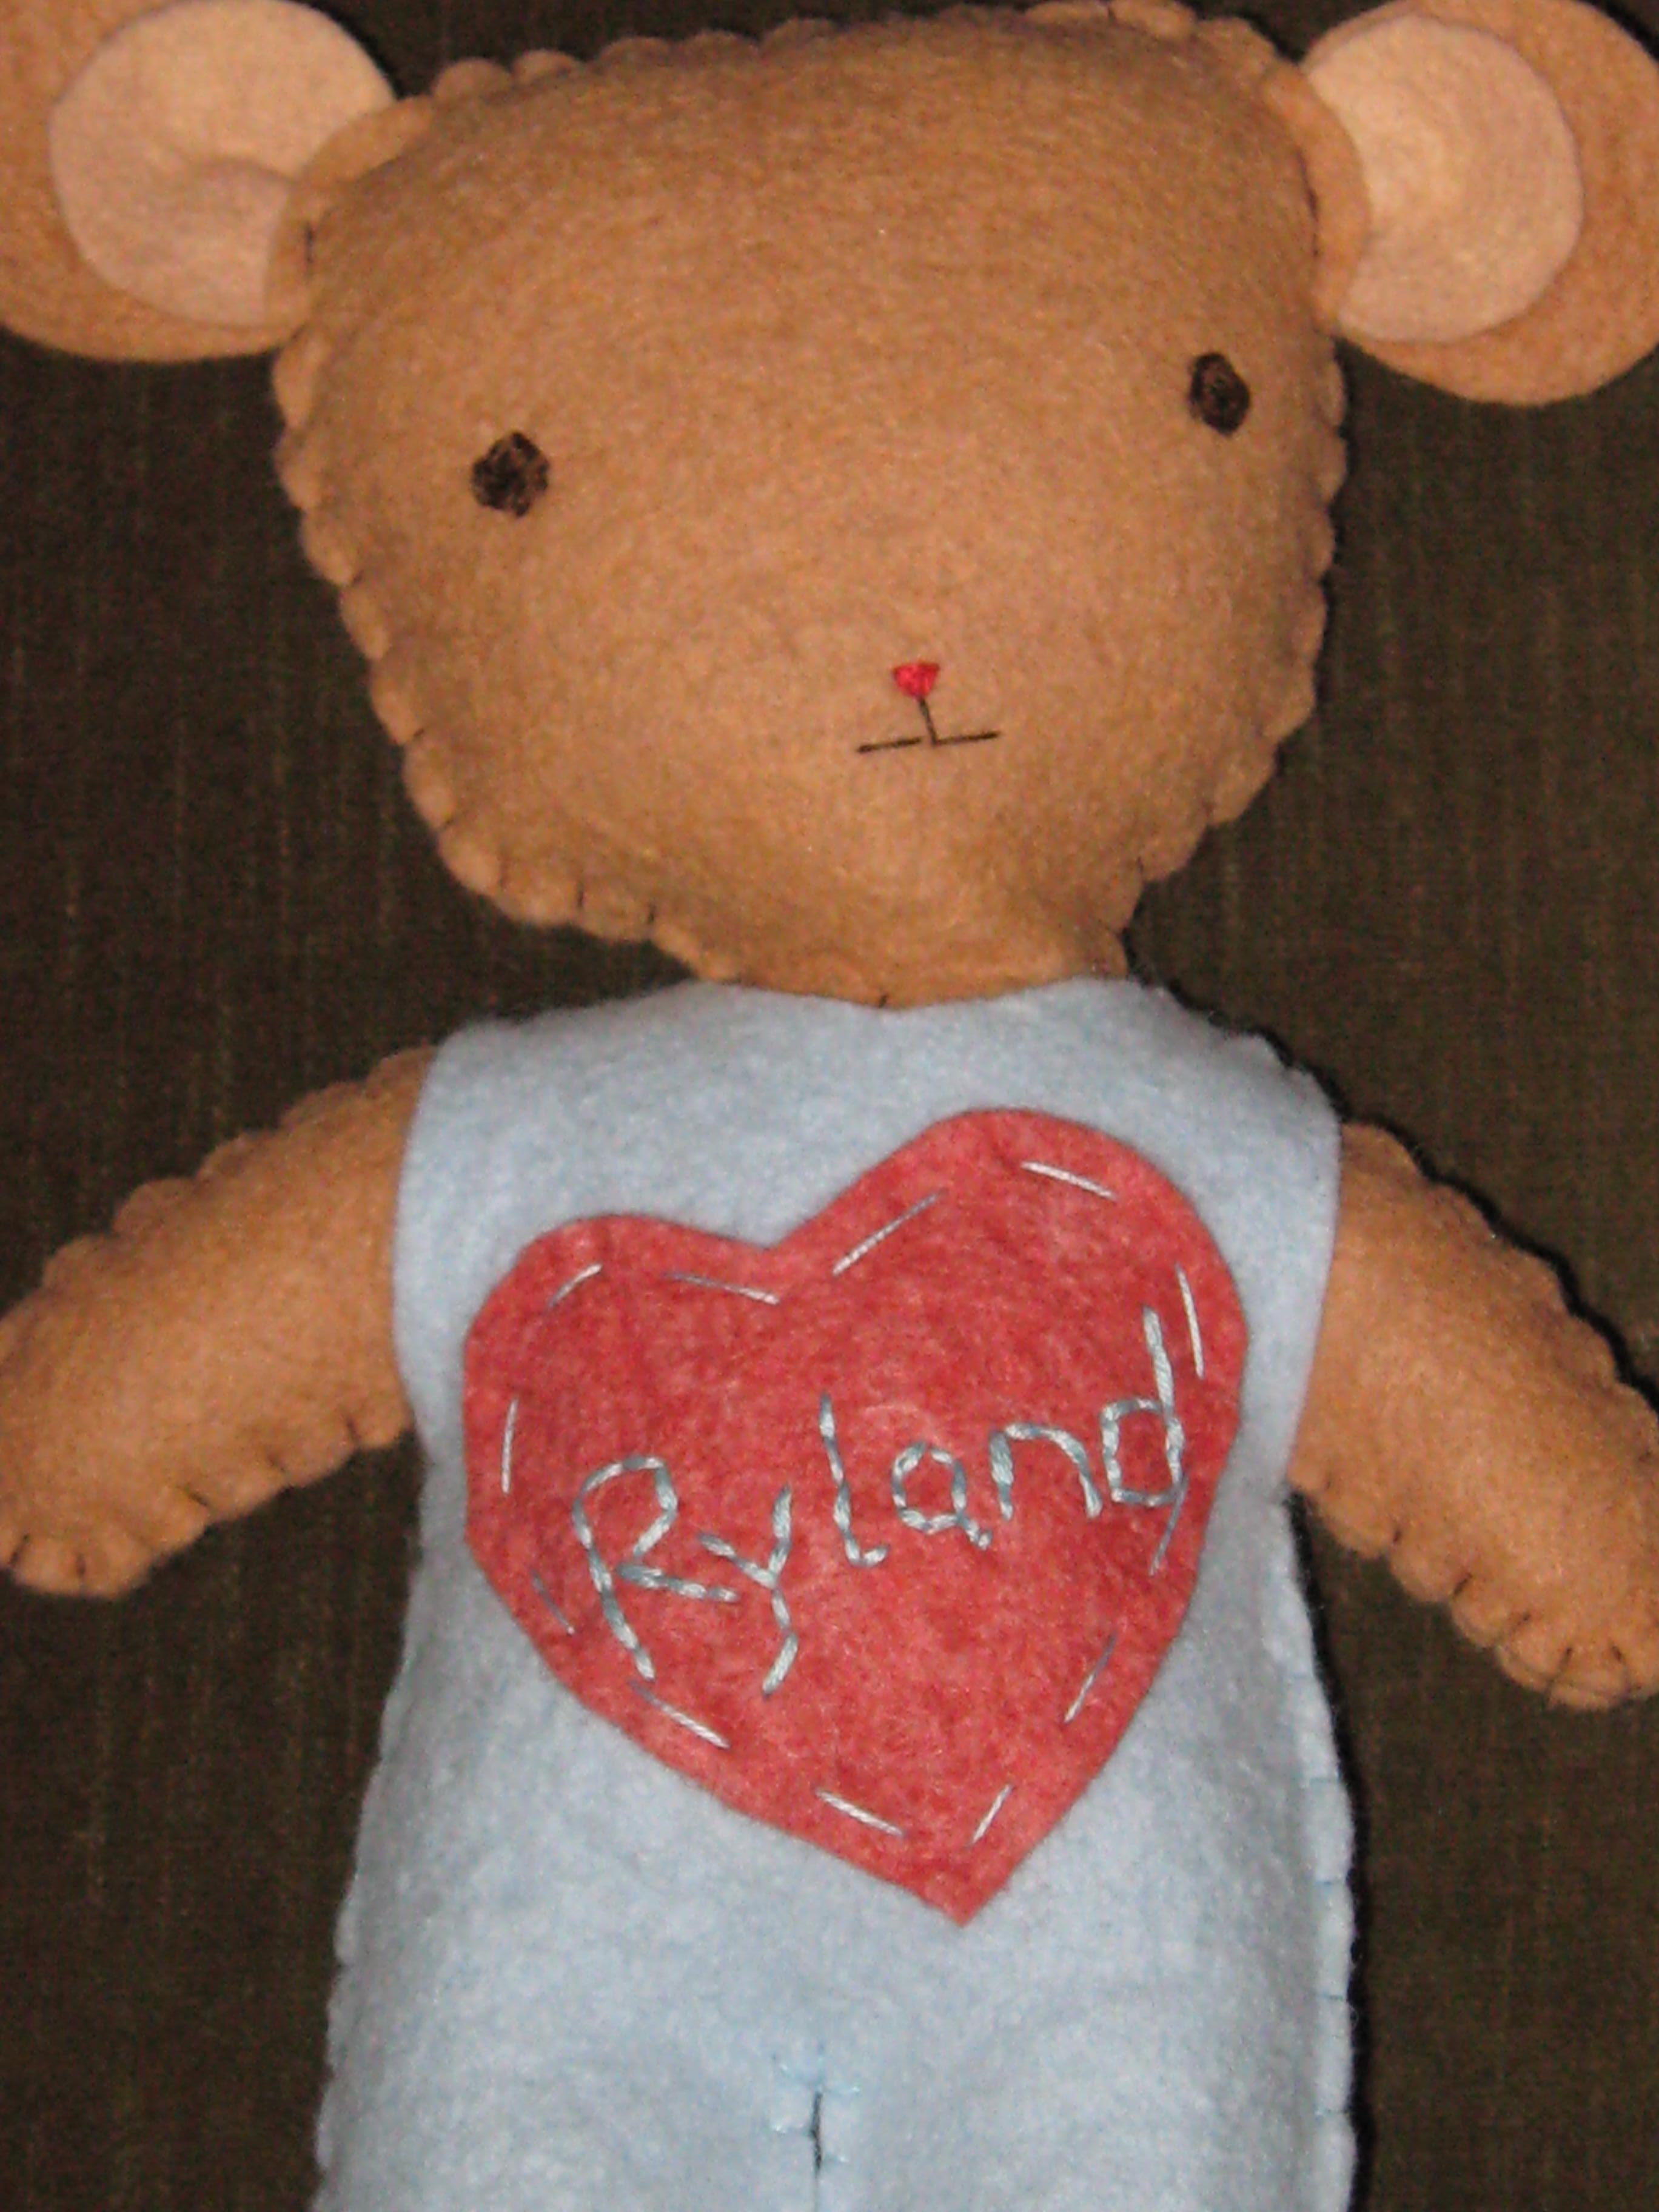 kata%20golda%20personalized%20bear.jpg